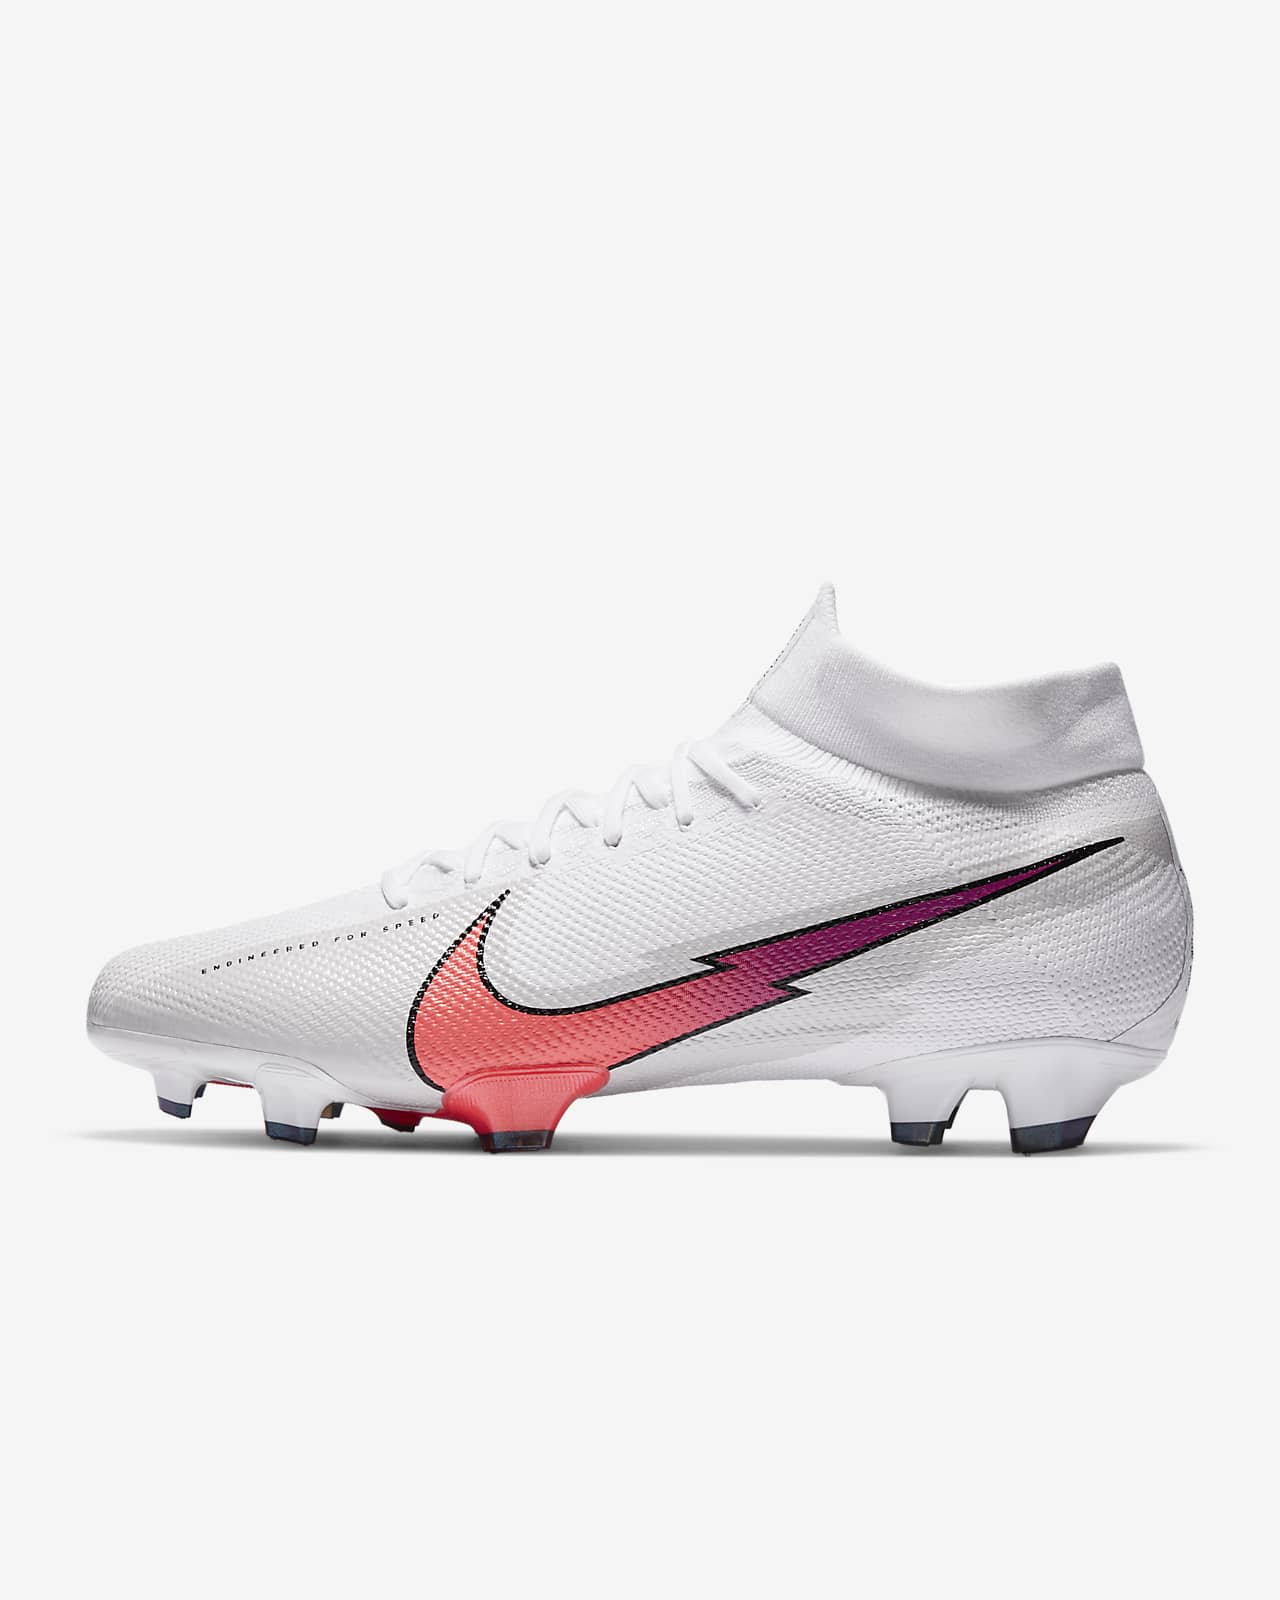 Nike Mercurial Superfly 7 Pro FG Firm-Ground Football Boot